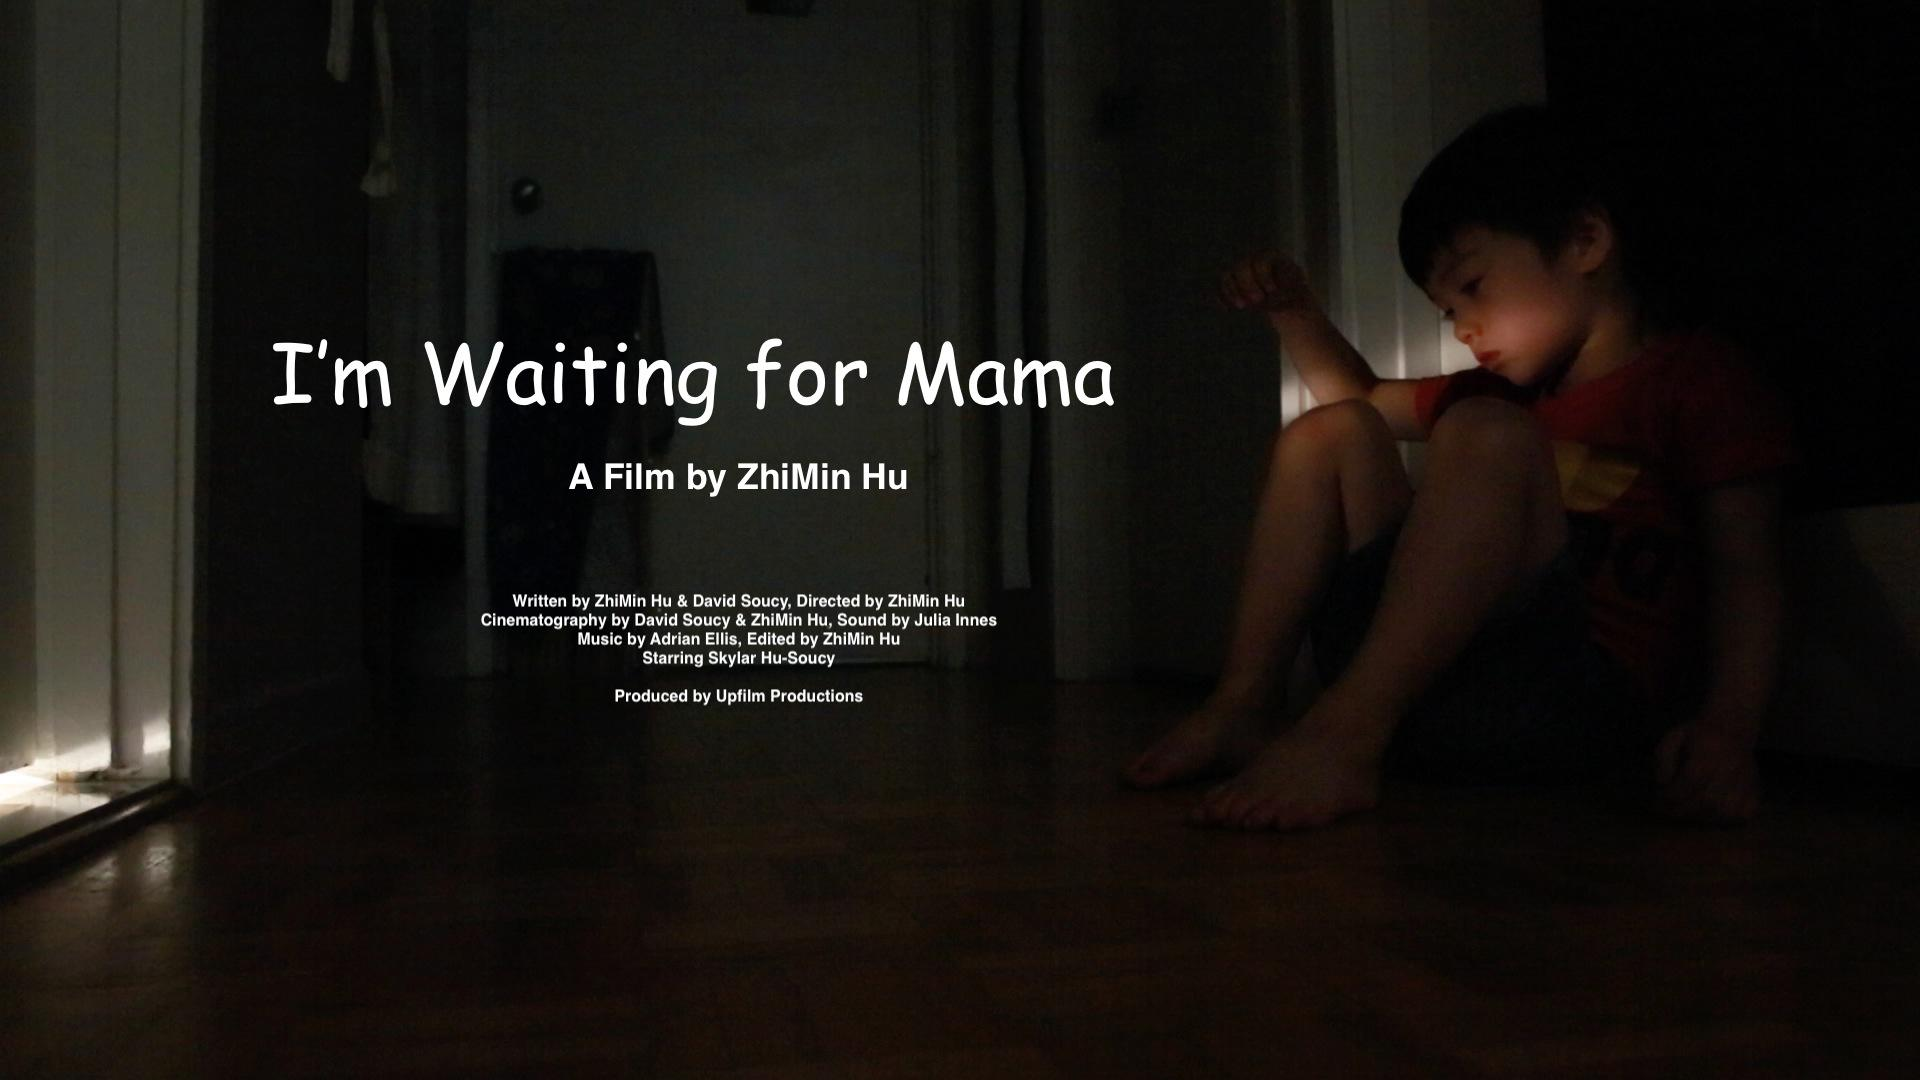 I'm Waiting for Mama